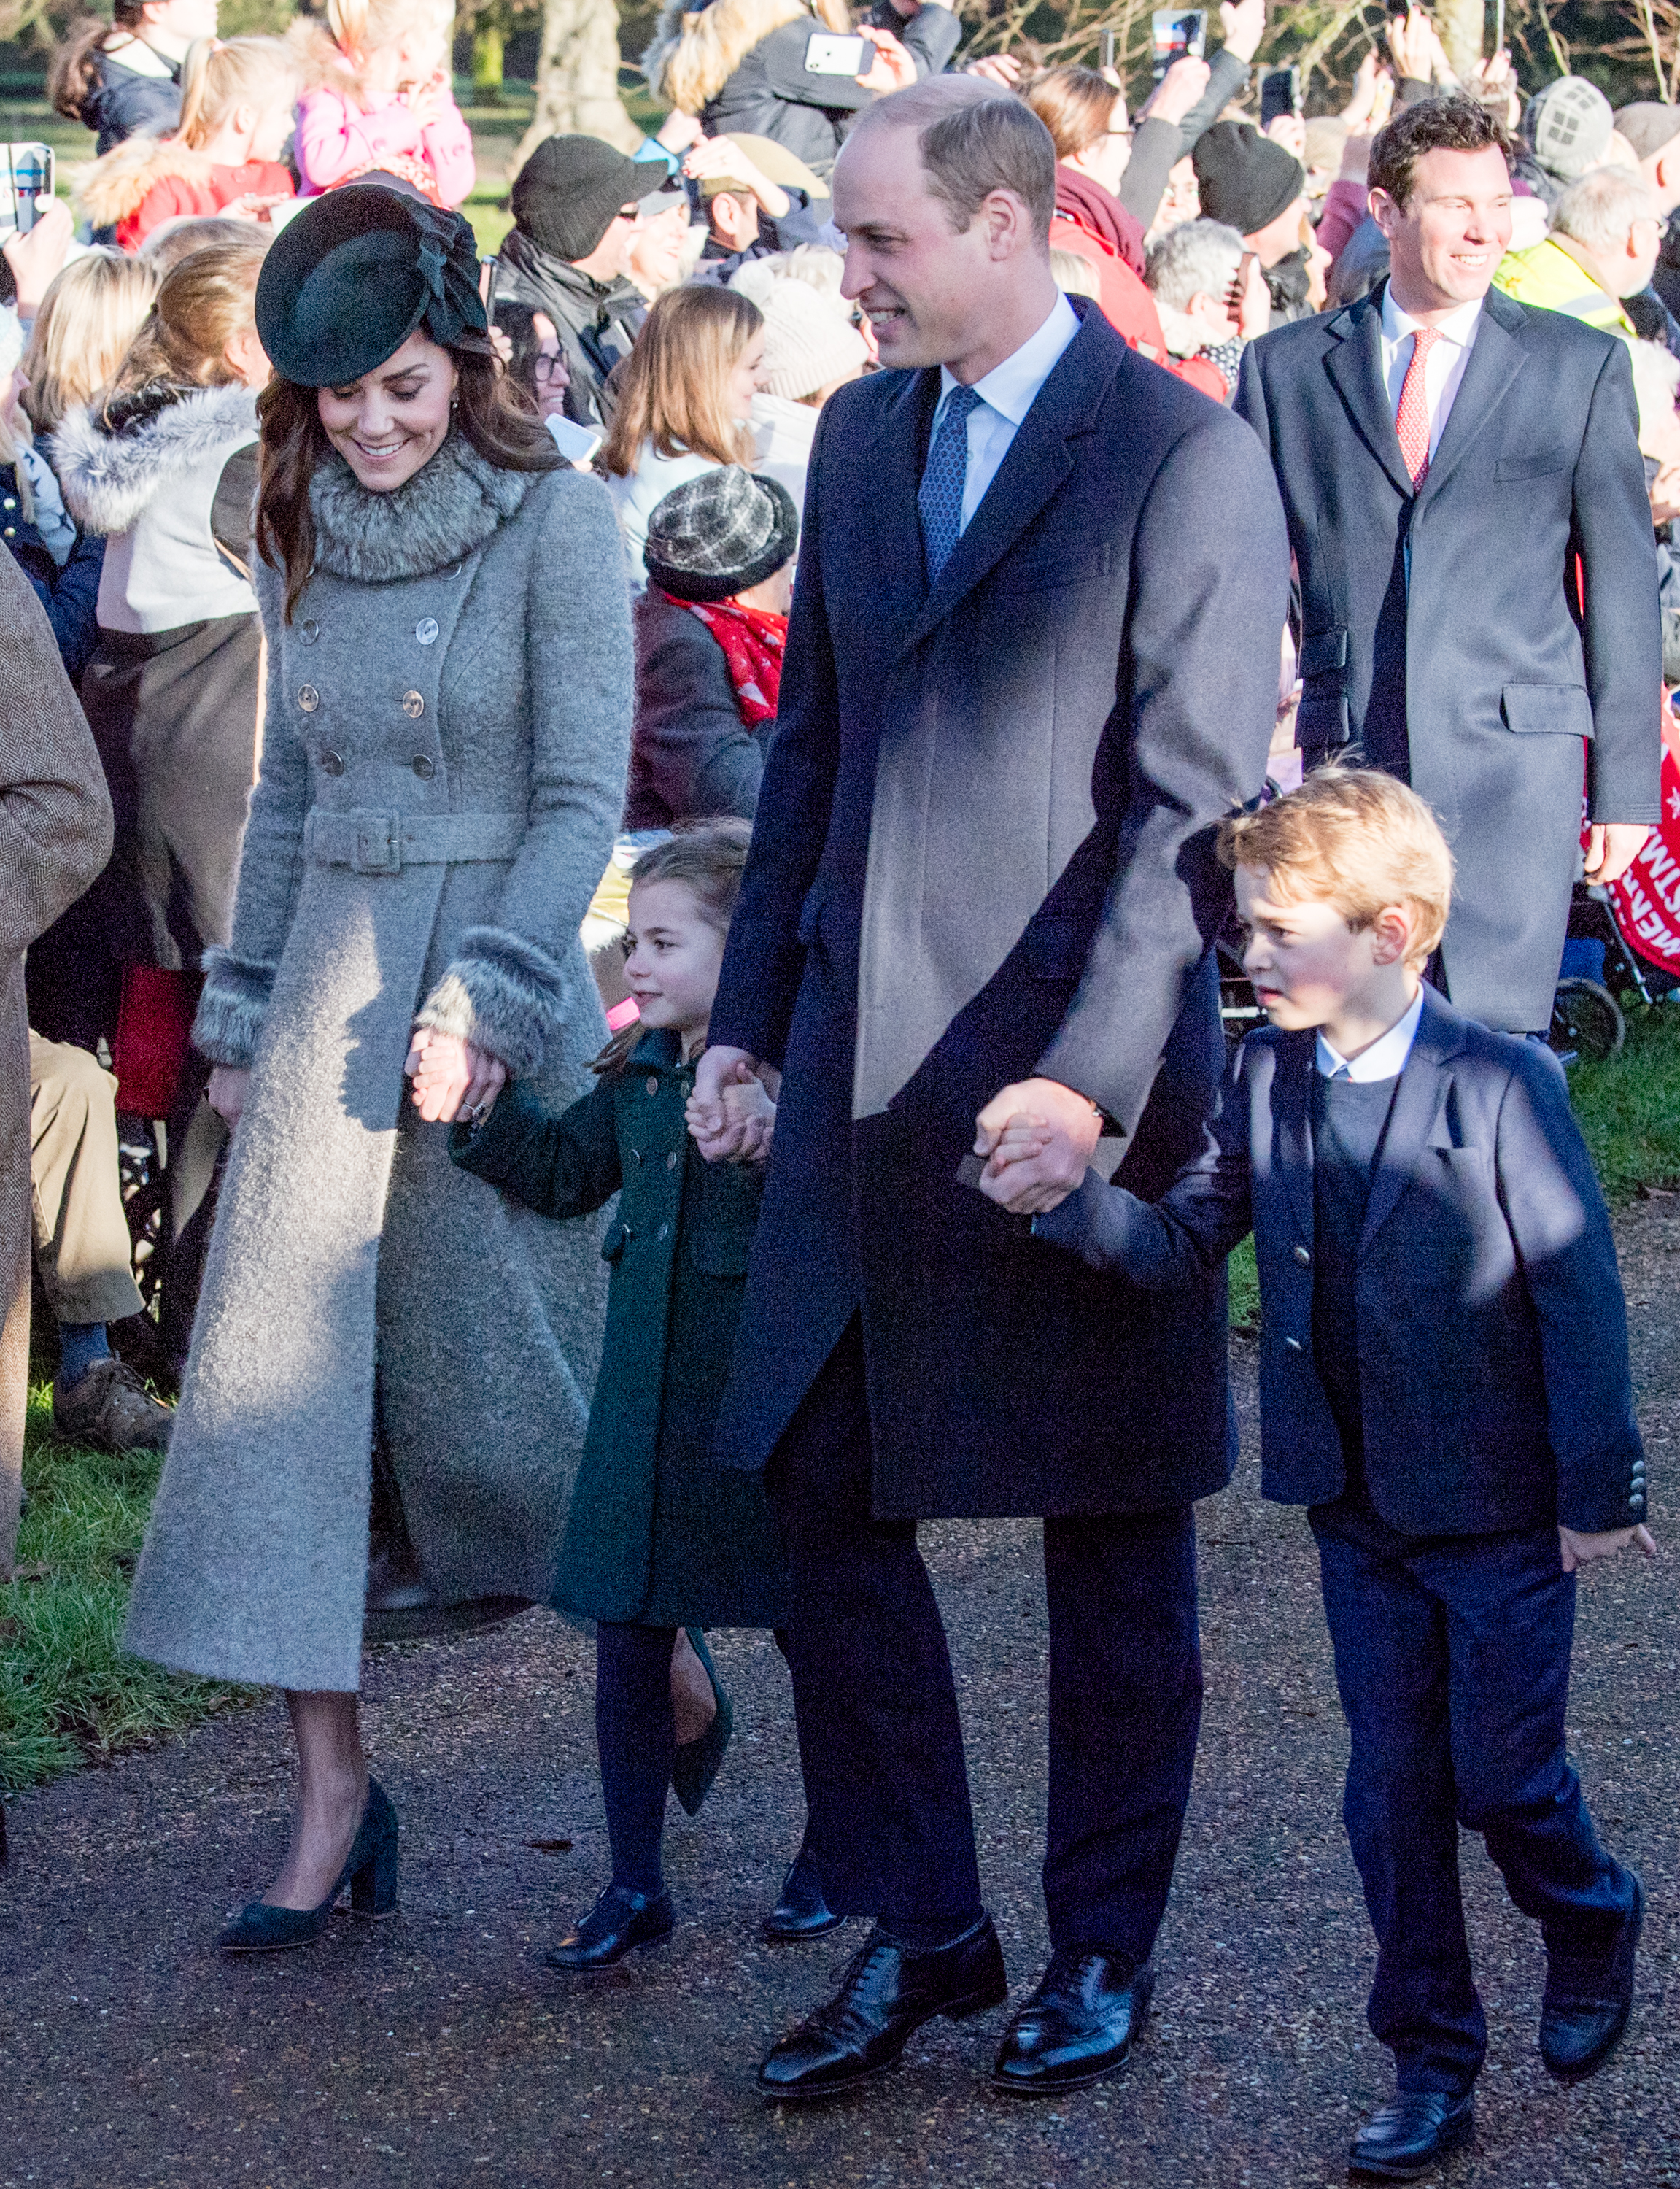 KING'S LYNN, ENGLAND - DECEMBER 25:  Prince William, Duke of Cambridge, Prince George of Cambridge, Catherine, Duchess of Cambridge and  Princess Charlotte of Cambridge attend the Christmas Day Church service at Church of St Mary Magdalene on the Sandringham estate on December 25, 2019 in King's Lynn, United Kingdom. (Photo by Pool/Samir Hussein/WireImage)